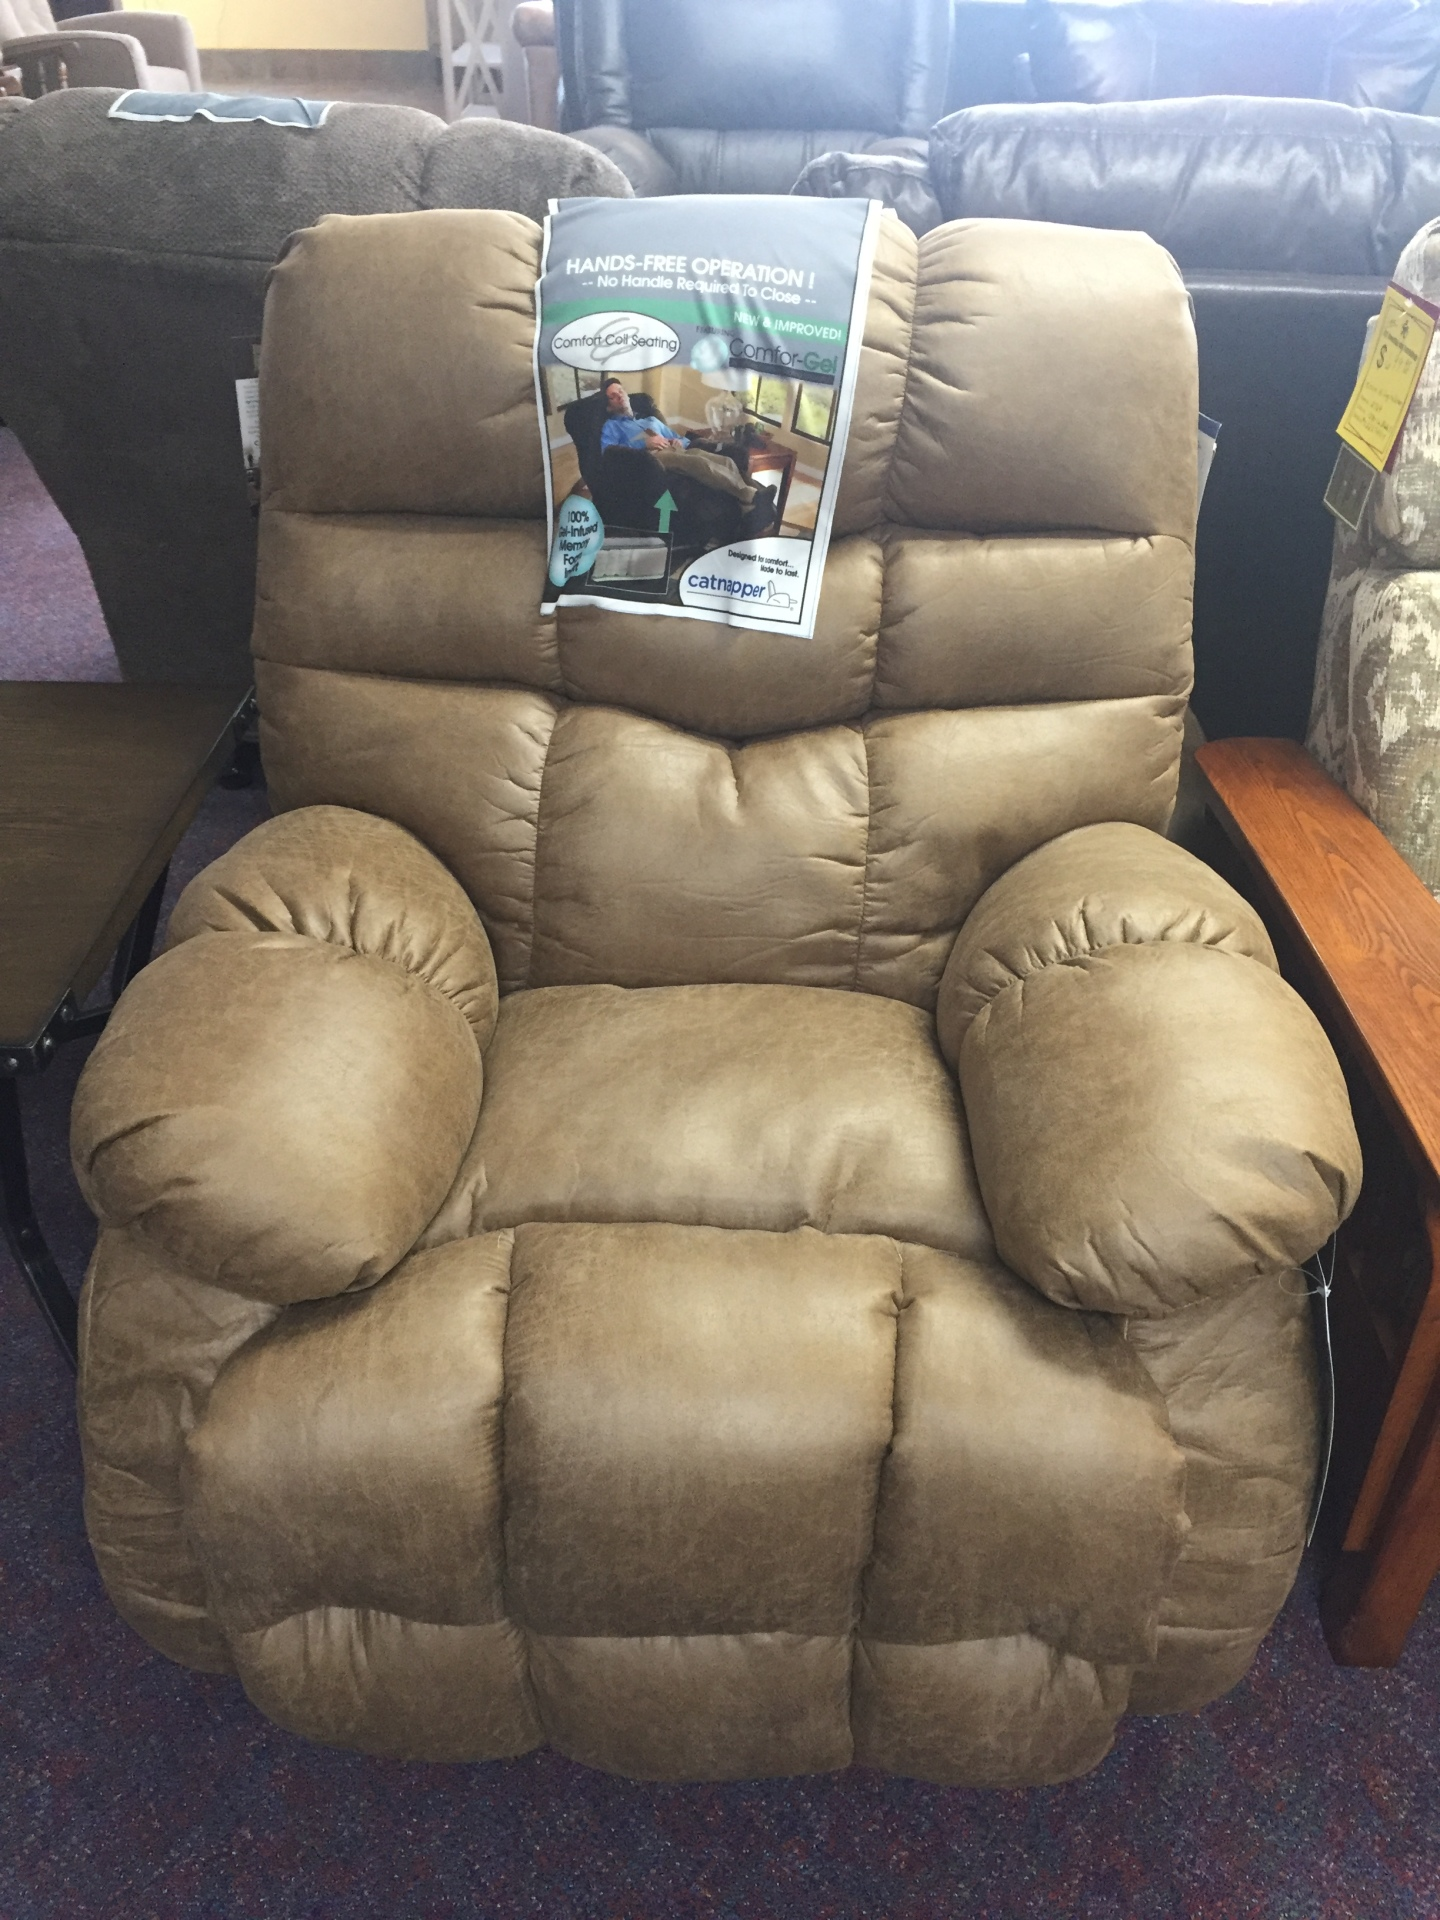 Catnapper Berman rocker/recliner- $